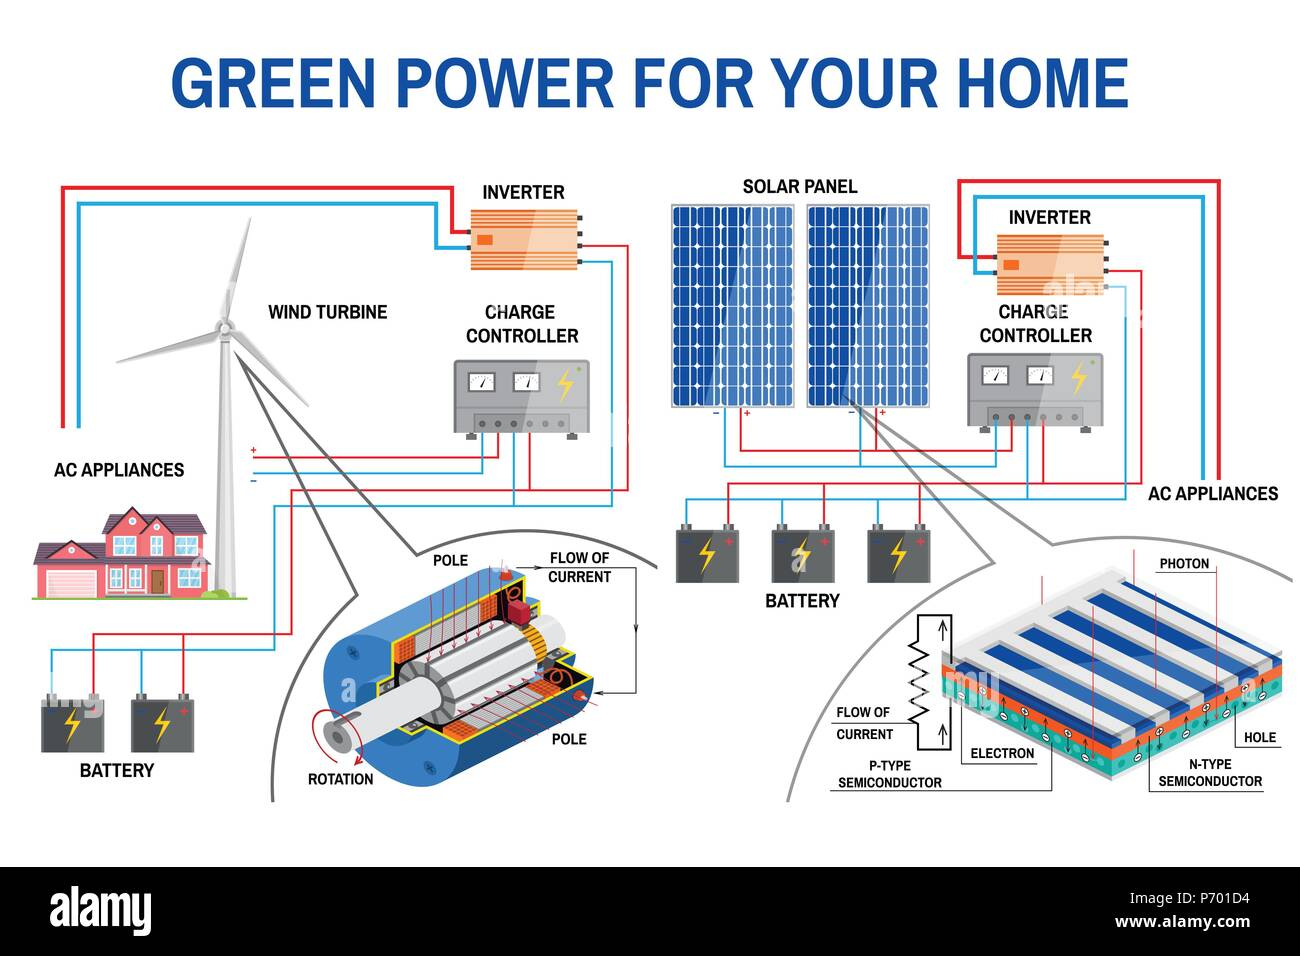 Solar System Diagram Stock Photos Also Off Grid Power As Well Electrical Panel And Wind Generation For Home Renewable Energy Concept Simplified